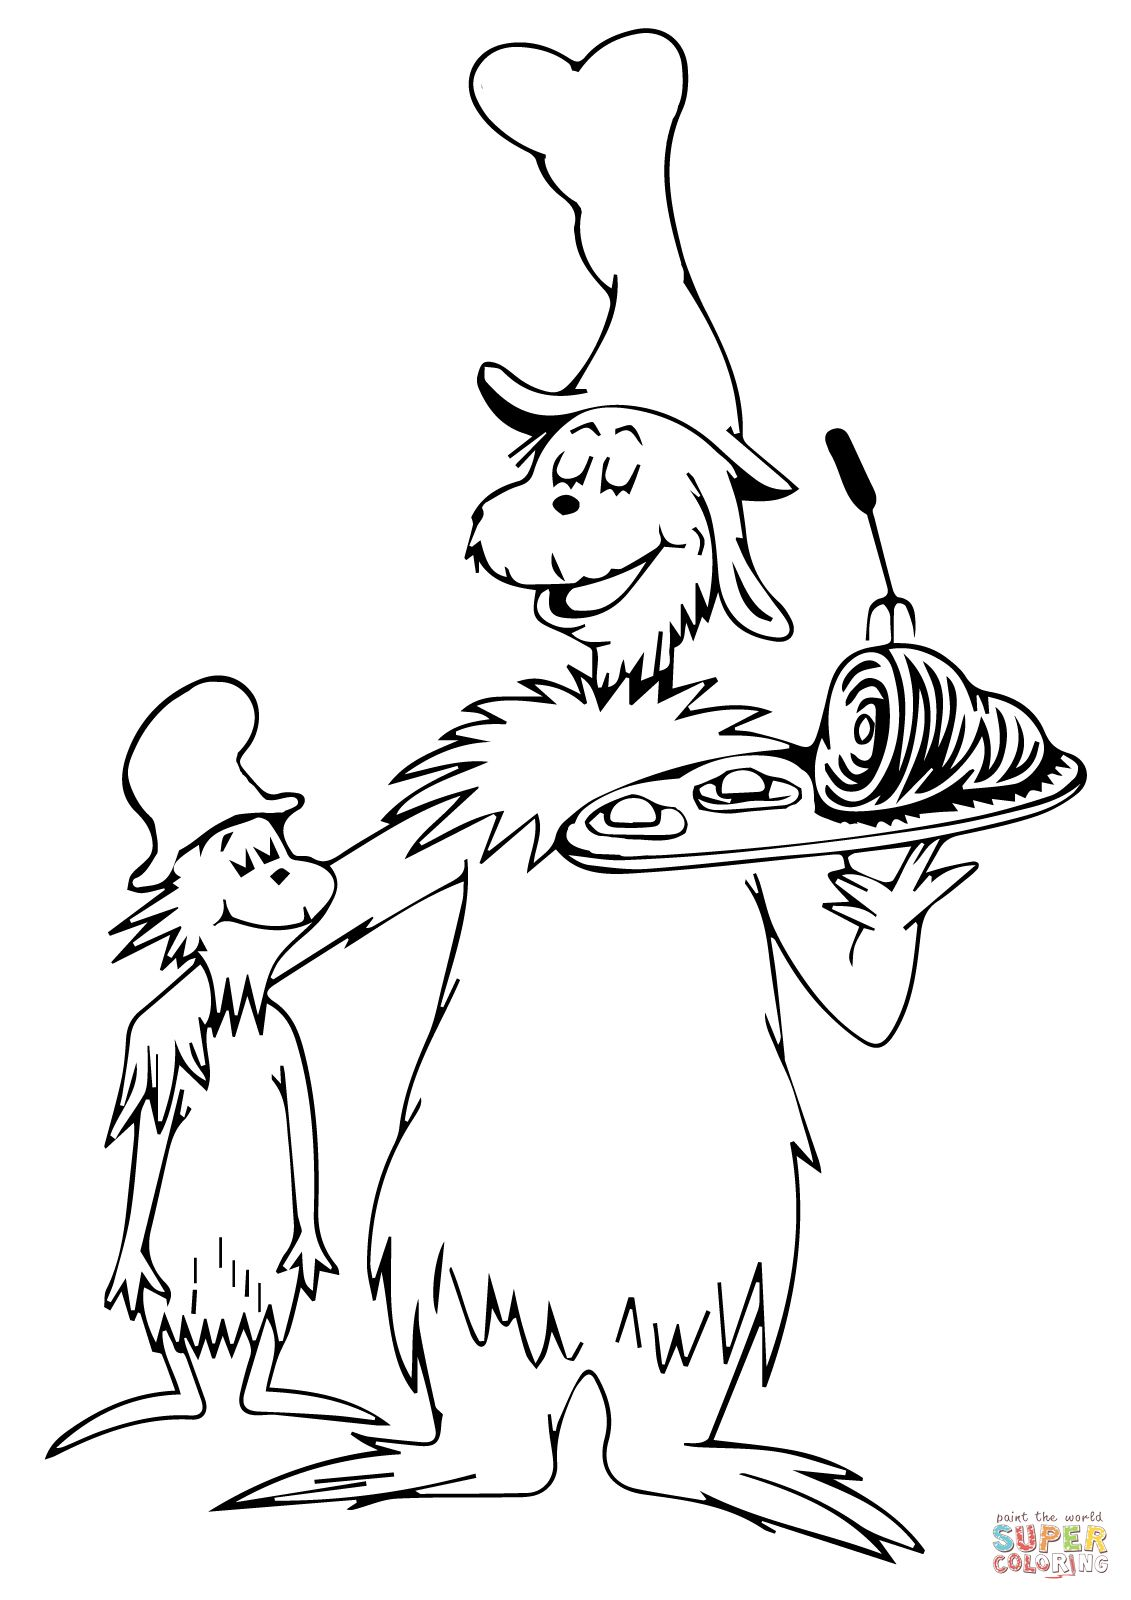 green eggs and ham coloring page green eggs and ham coloring pages various episodes k5 green coloring eggs page and ham